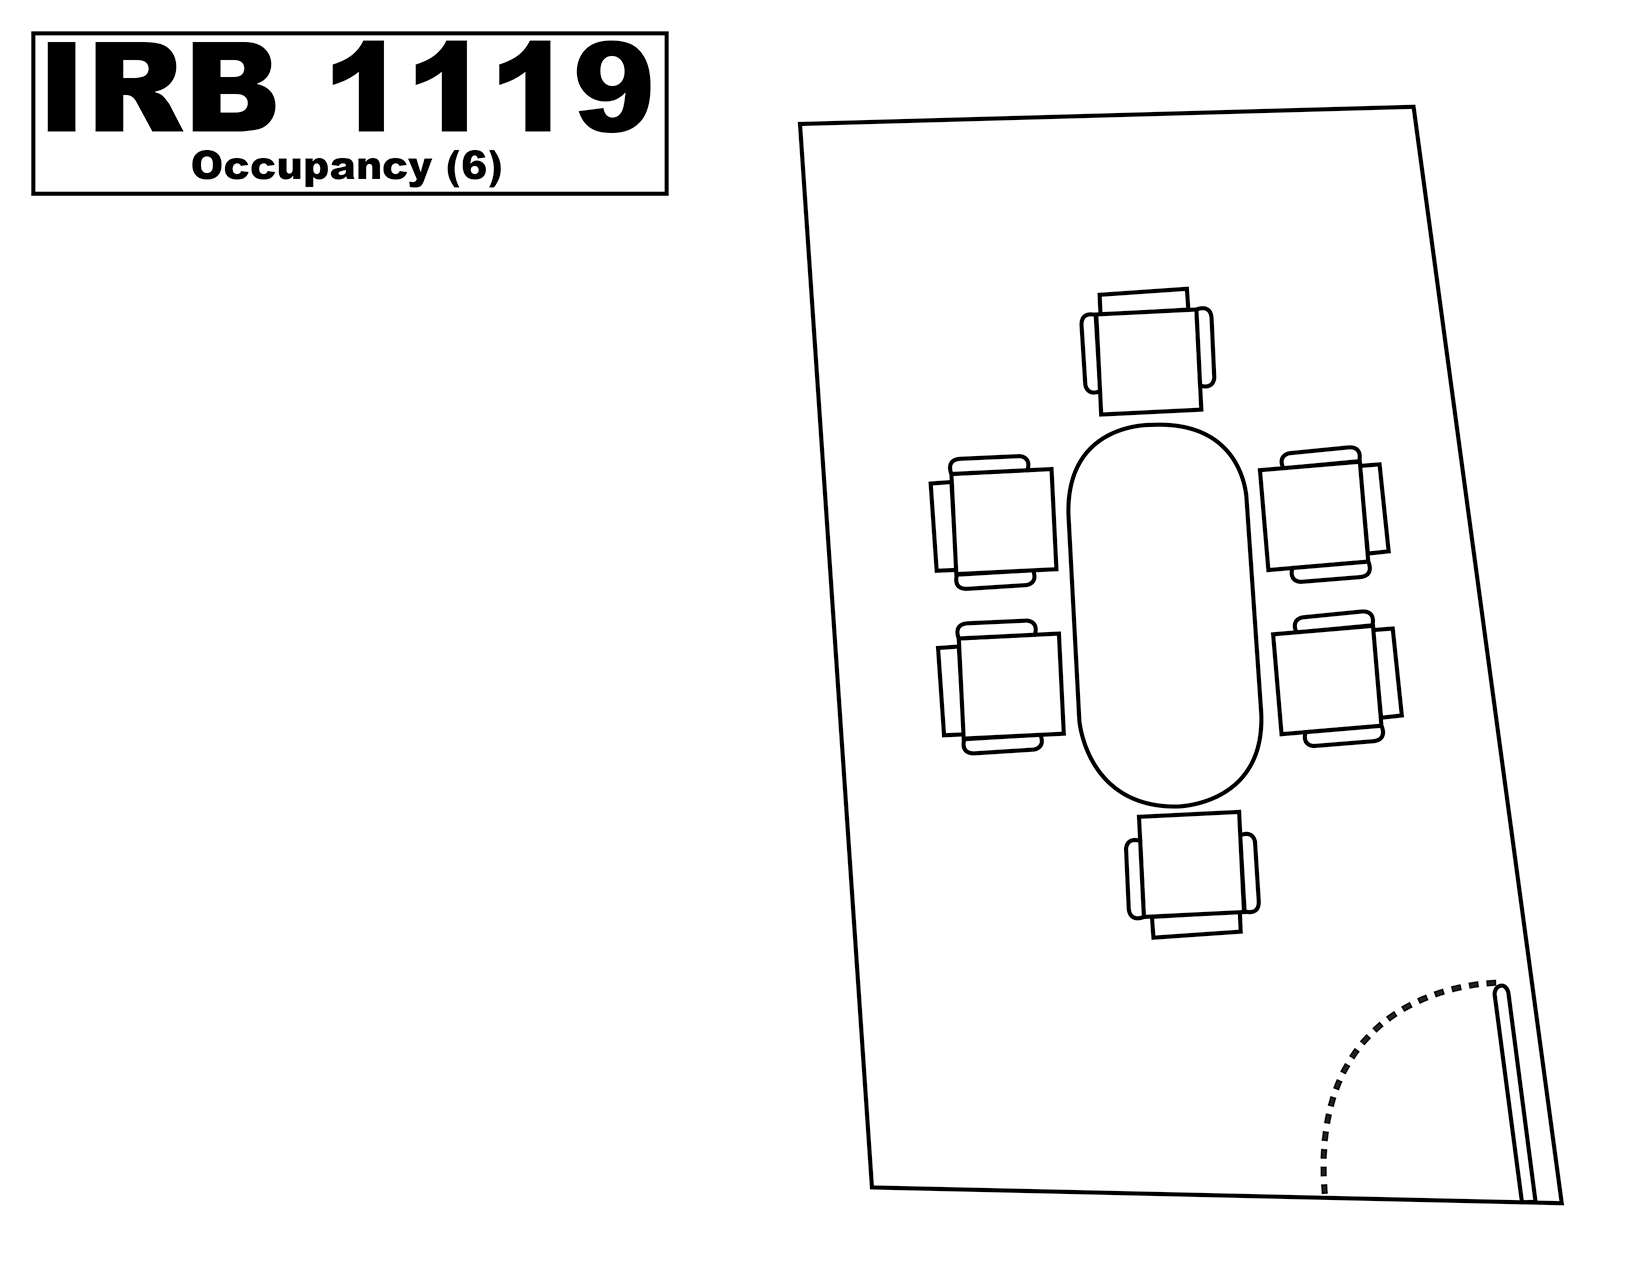 IRB1119 floorplan